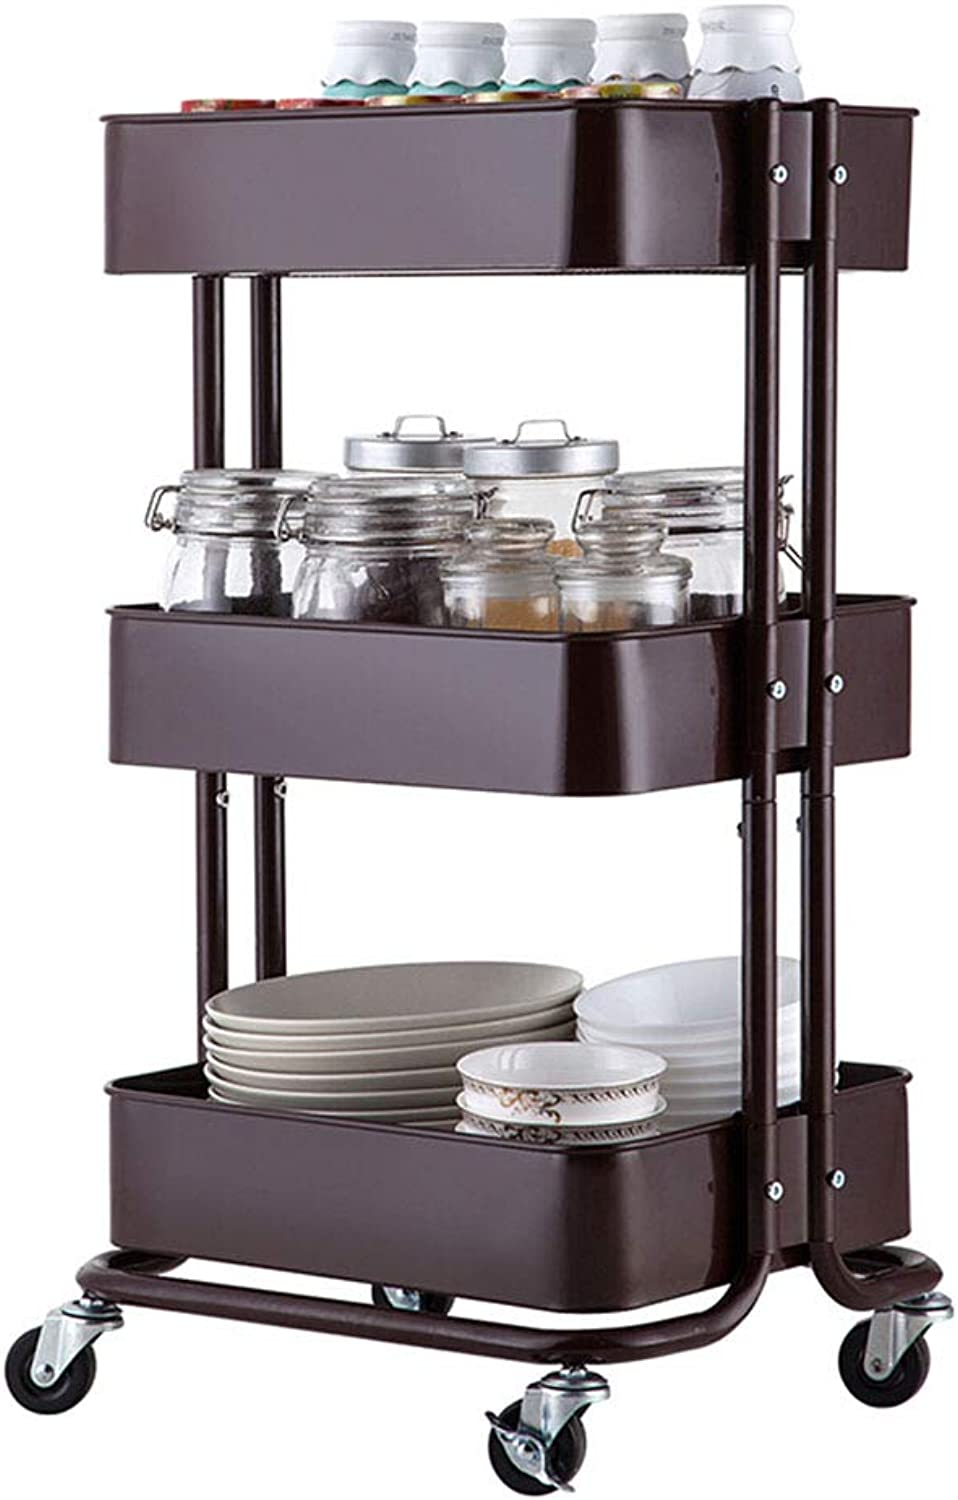 XLong-Home 3-Shelf Carbon Steel Storage Rack Basket Shelving Unit Trolley Cabinet Kitchen Island with Caster Wheels